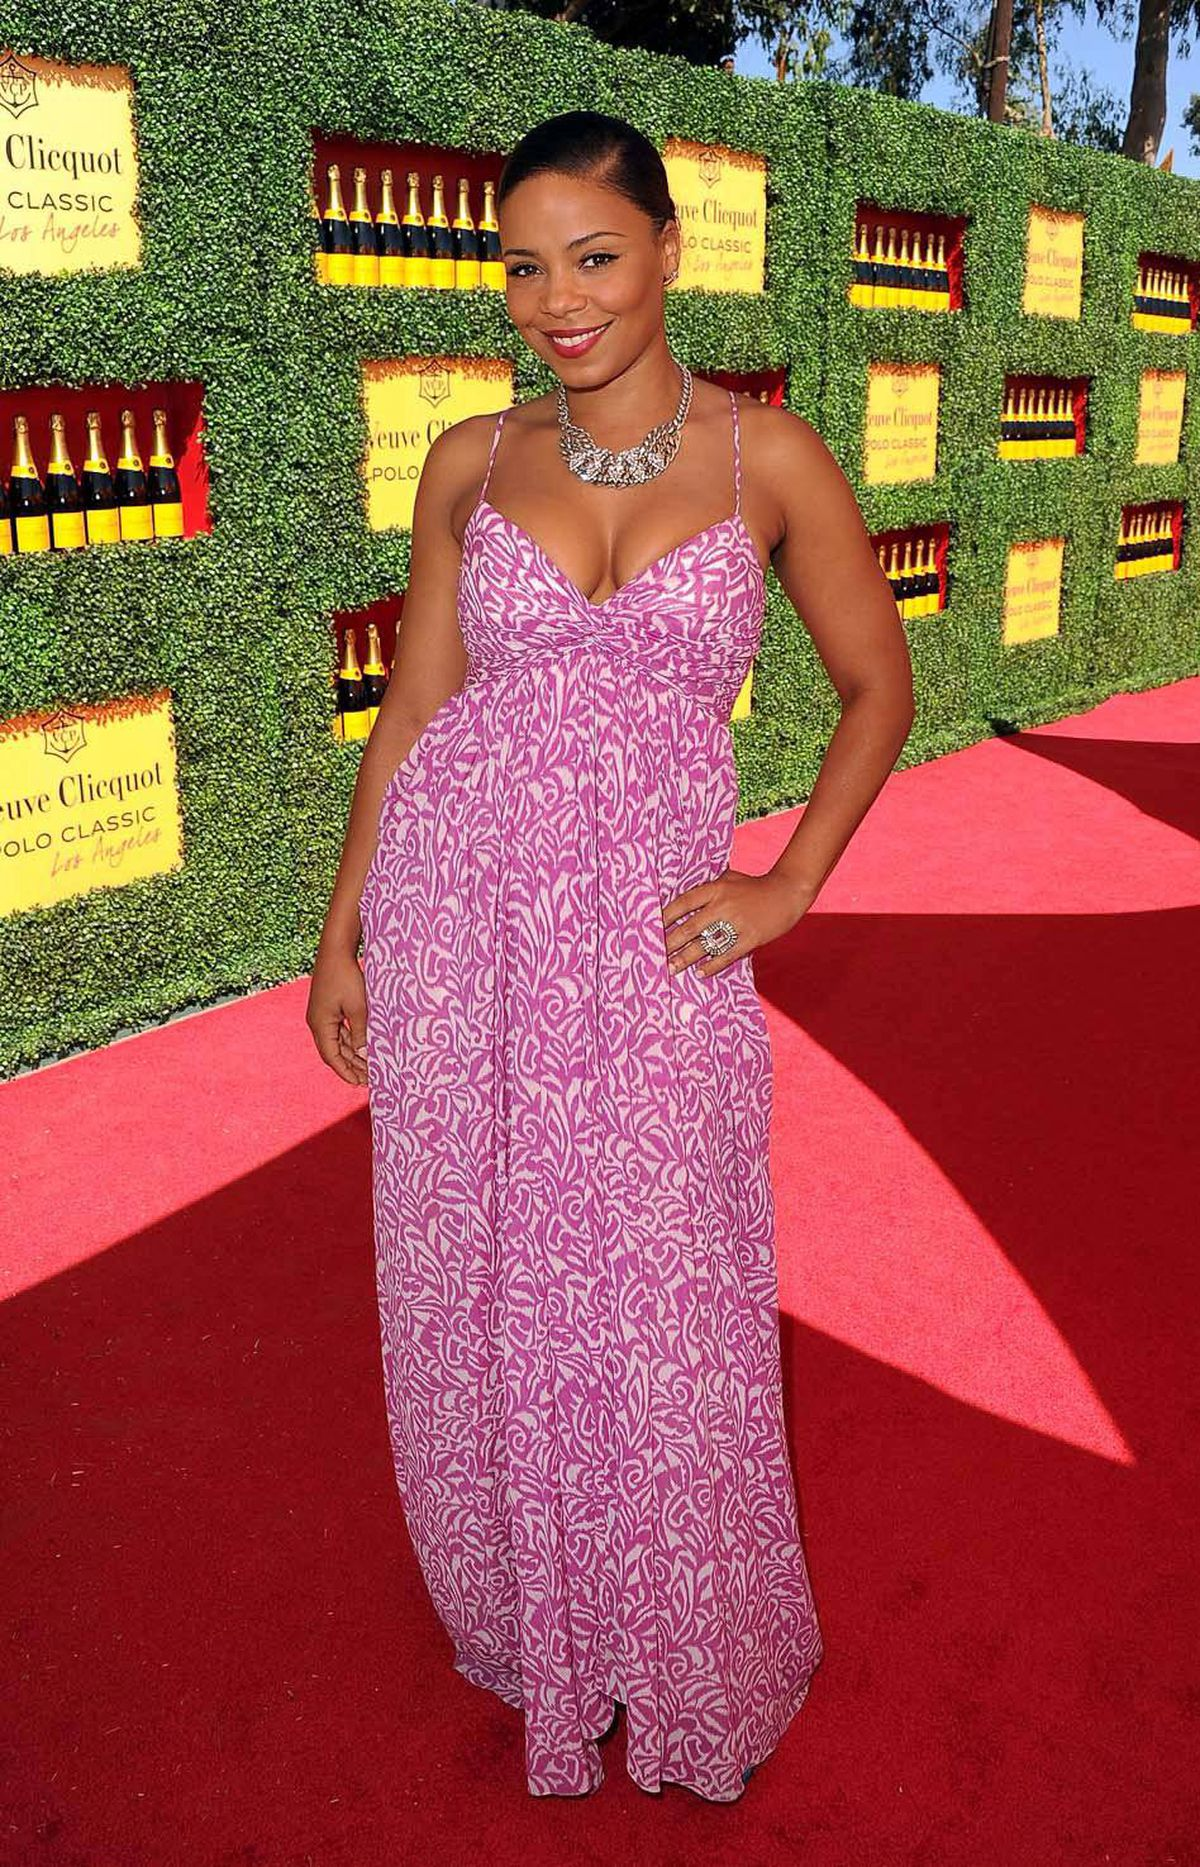 """Clearly outraged by the excessive bonuses paid to Wall Street executives, actress Sanaa Lathan defines unostentation at the champagne-sponsored event for the elitest equestrian game sometimes known as """"The Sport of Kings"""" in Los Angeles on Sunday."""